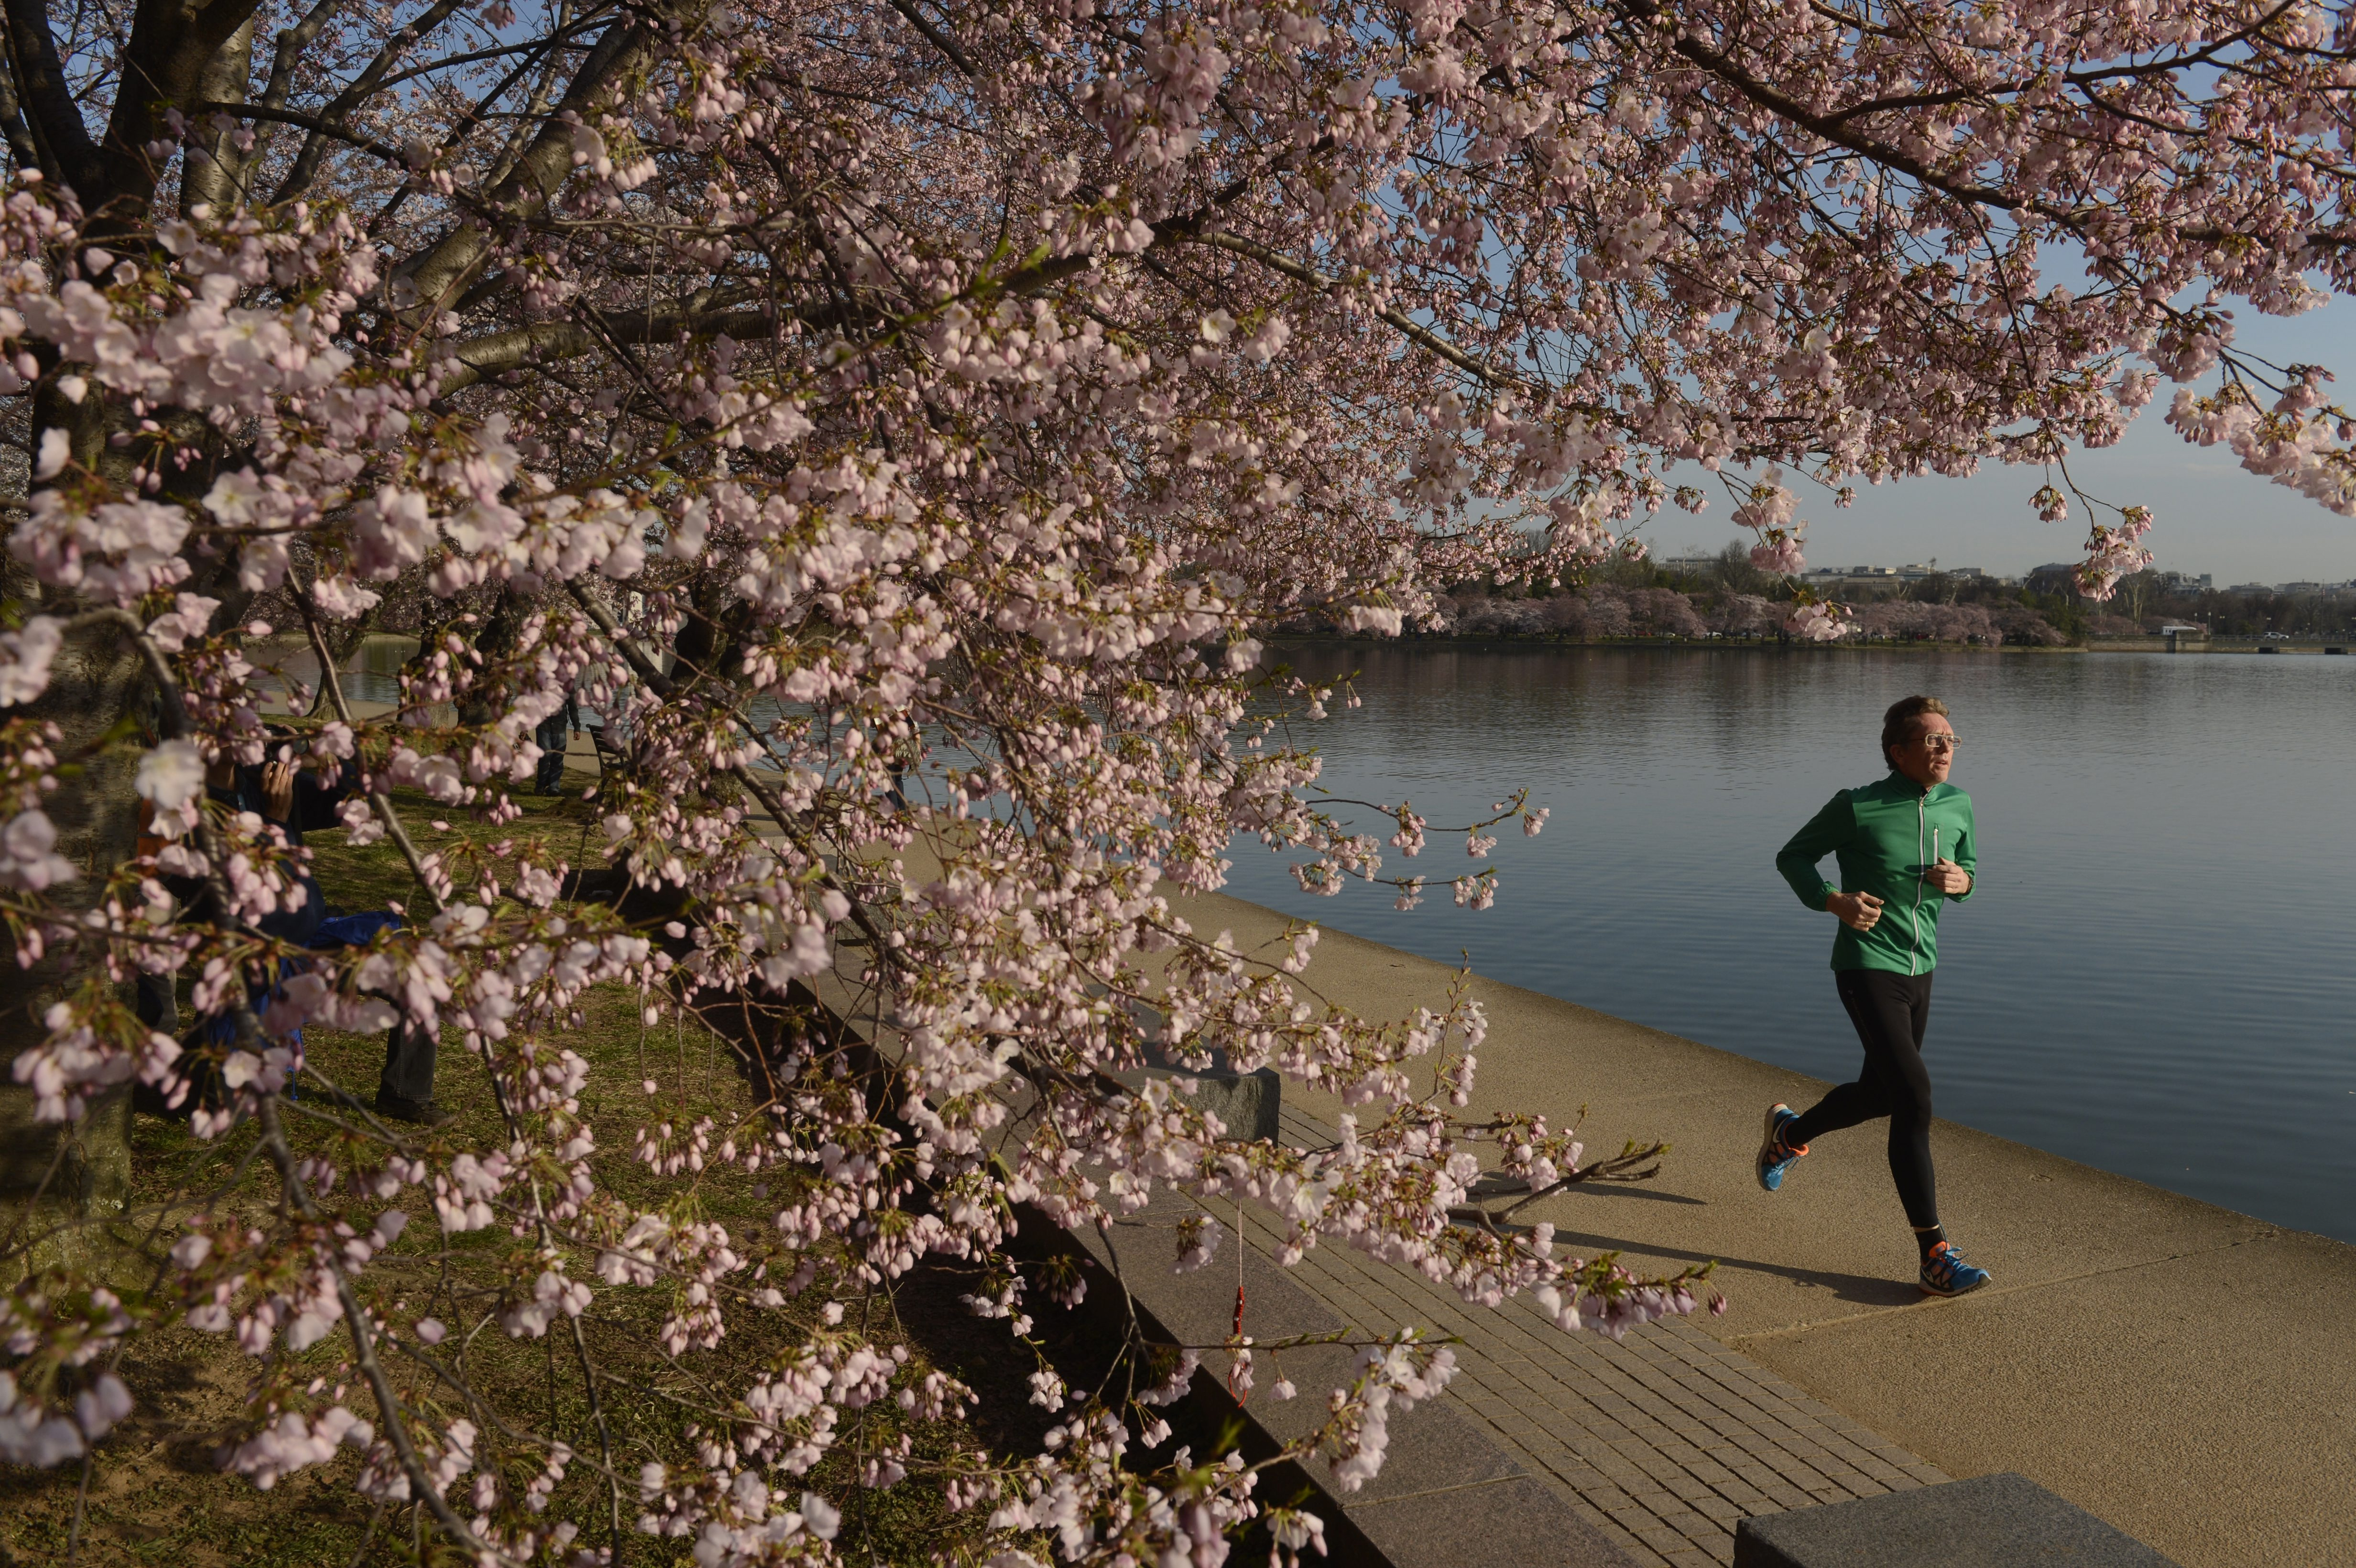 A man jogs beneath cherry blossoms in bloom at the Tidal Basin in Washington on April 8, 2013.